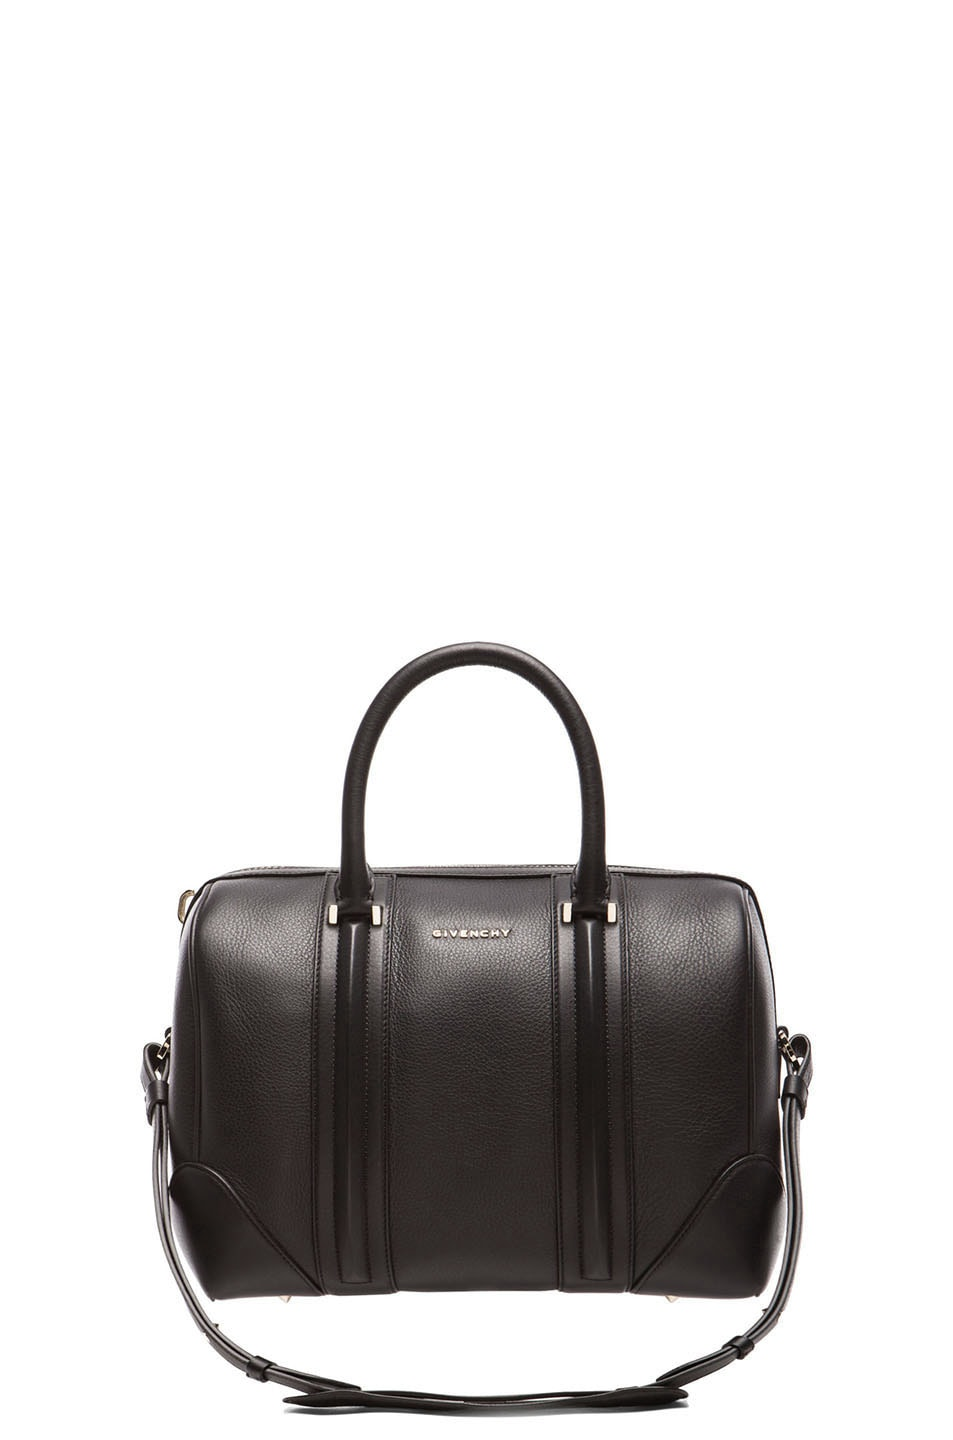 Image 1 of GIVENCHY Medium Lucrezia Bag in Black